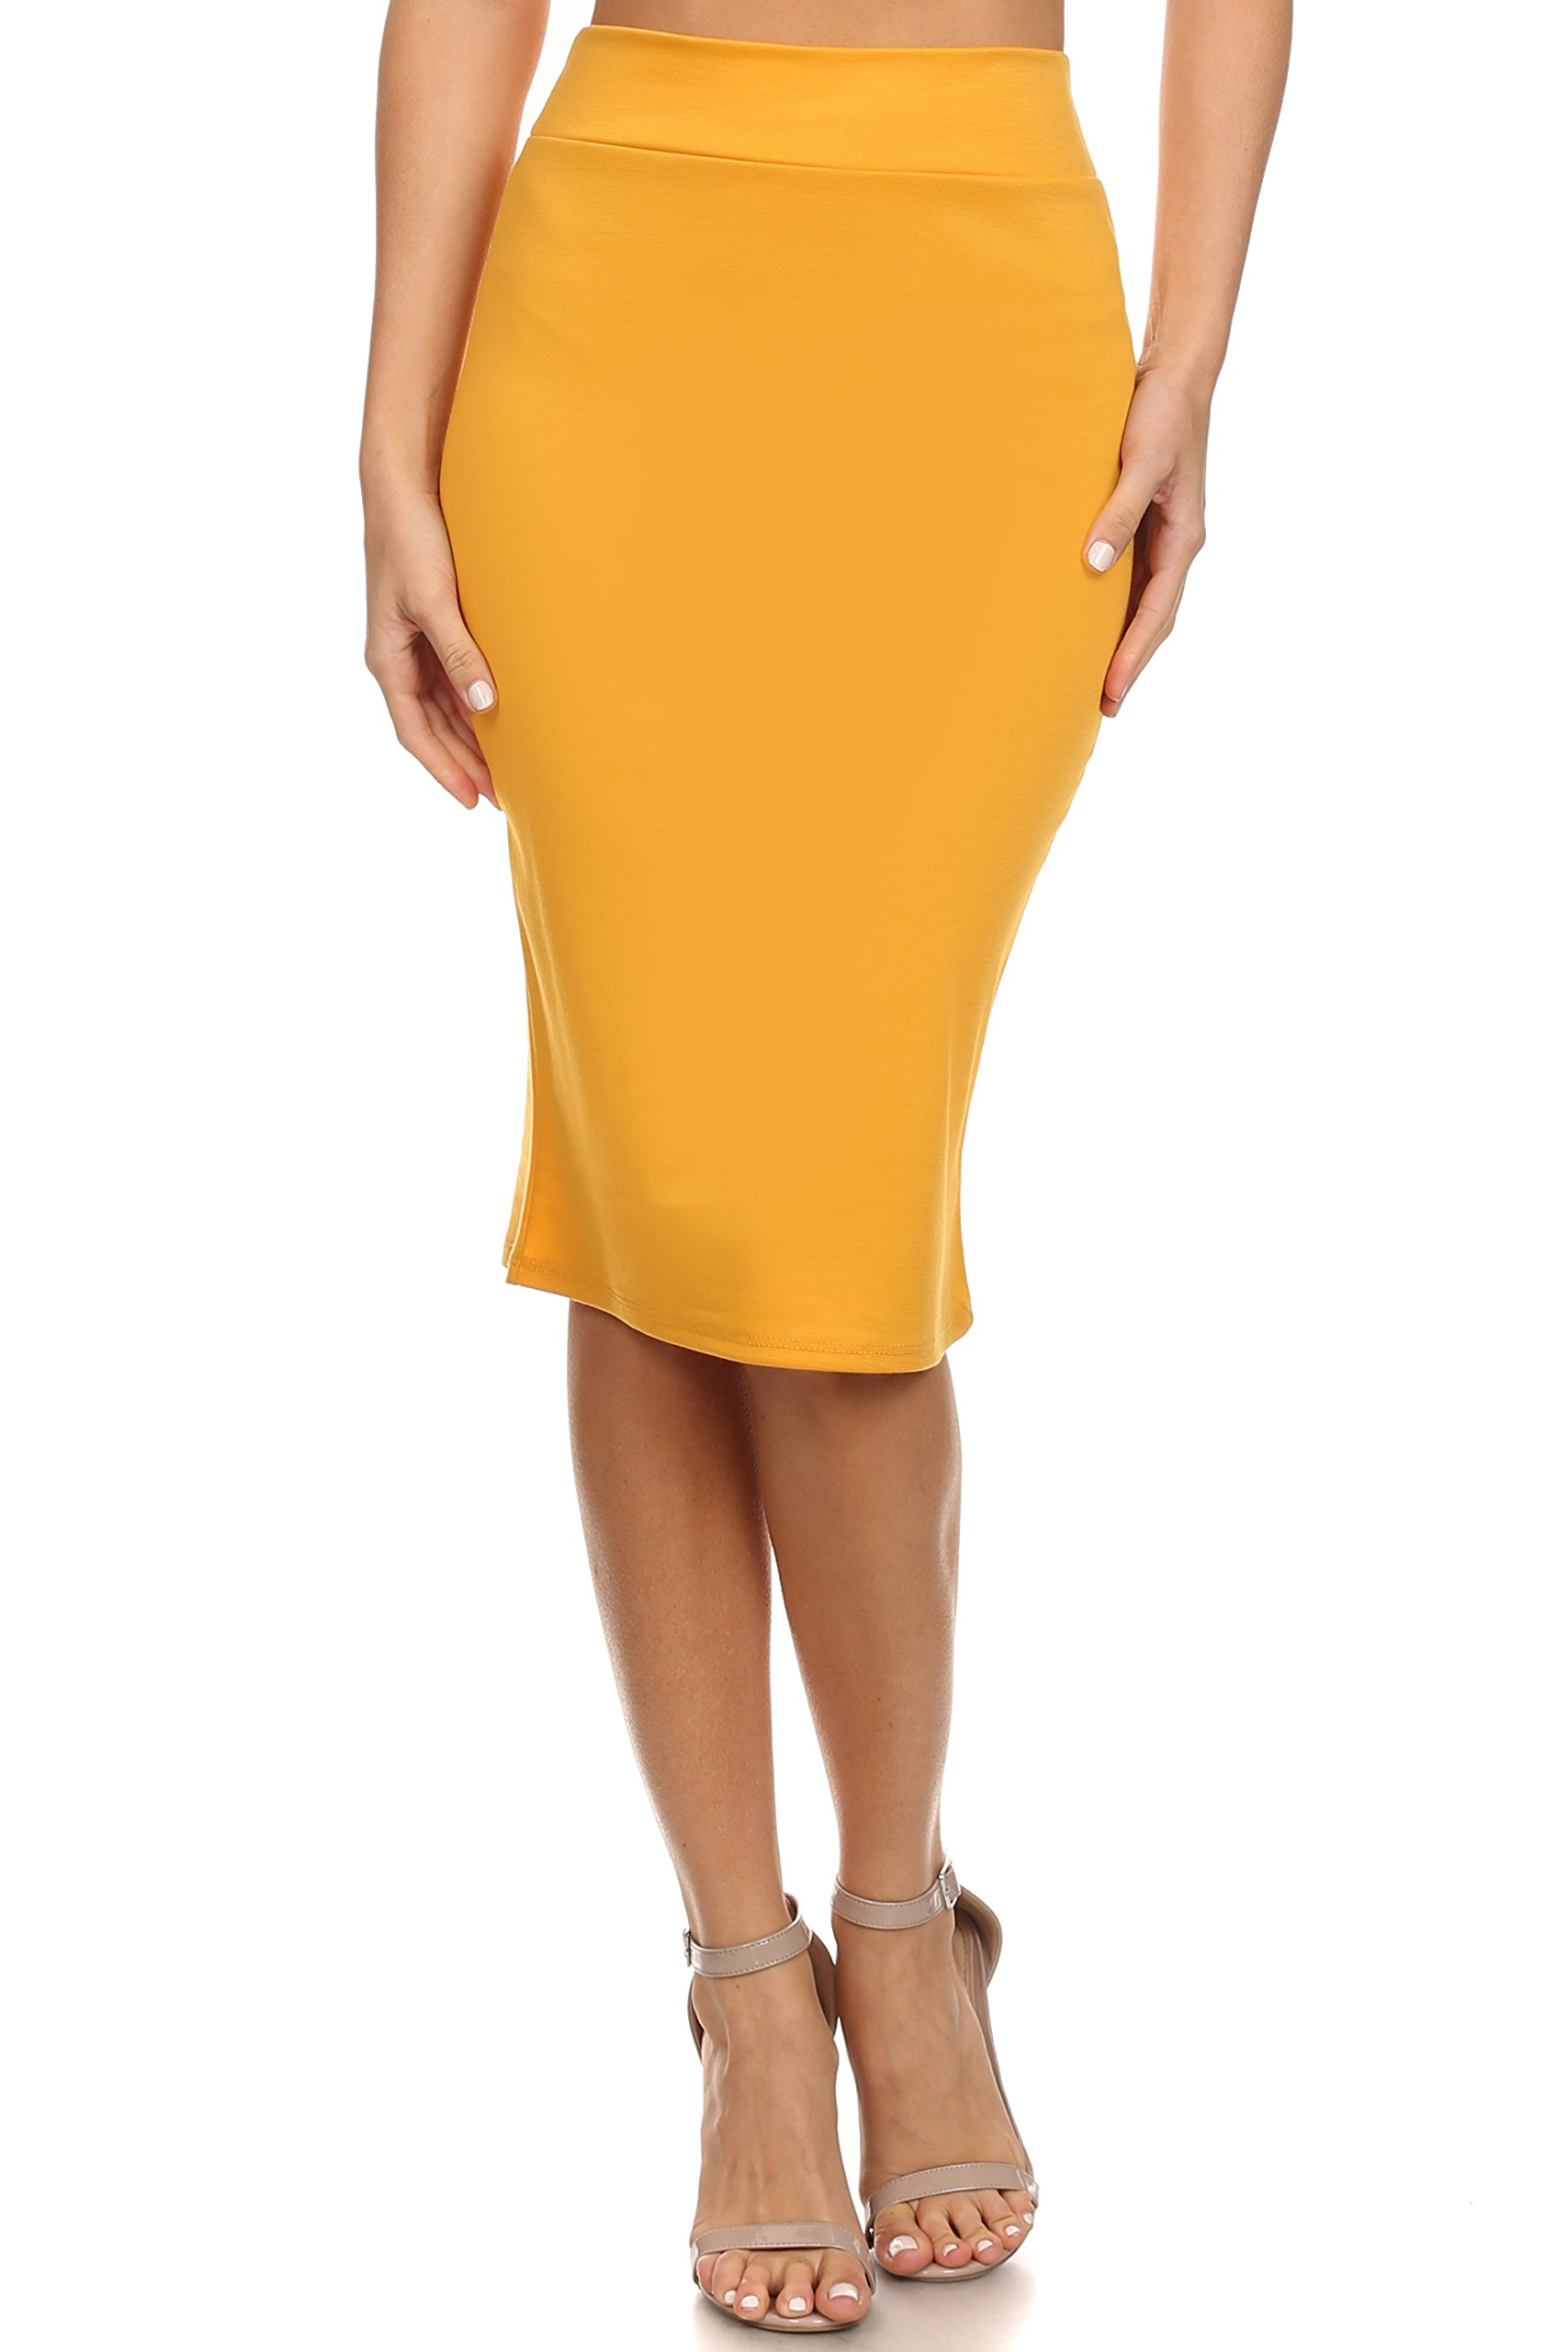 Women's Below the Knee Pencil Skirt for Office Wear - Made in USA ,Mustard ,Small